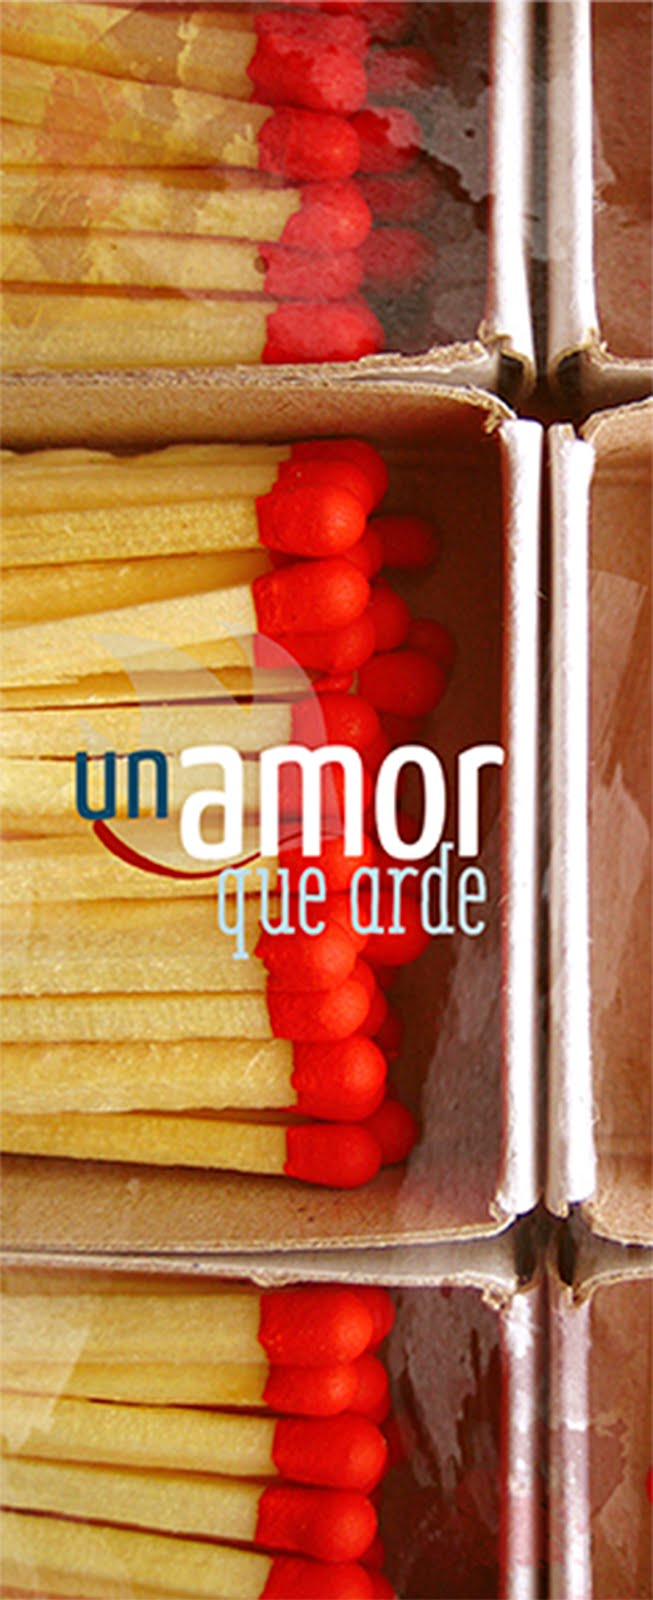 ¿Un amor que arde?